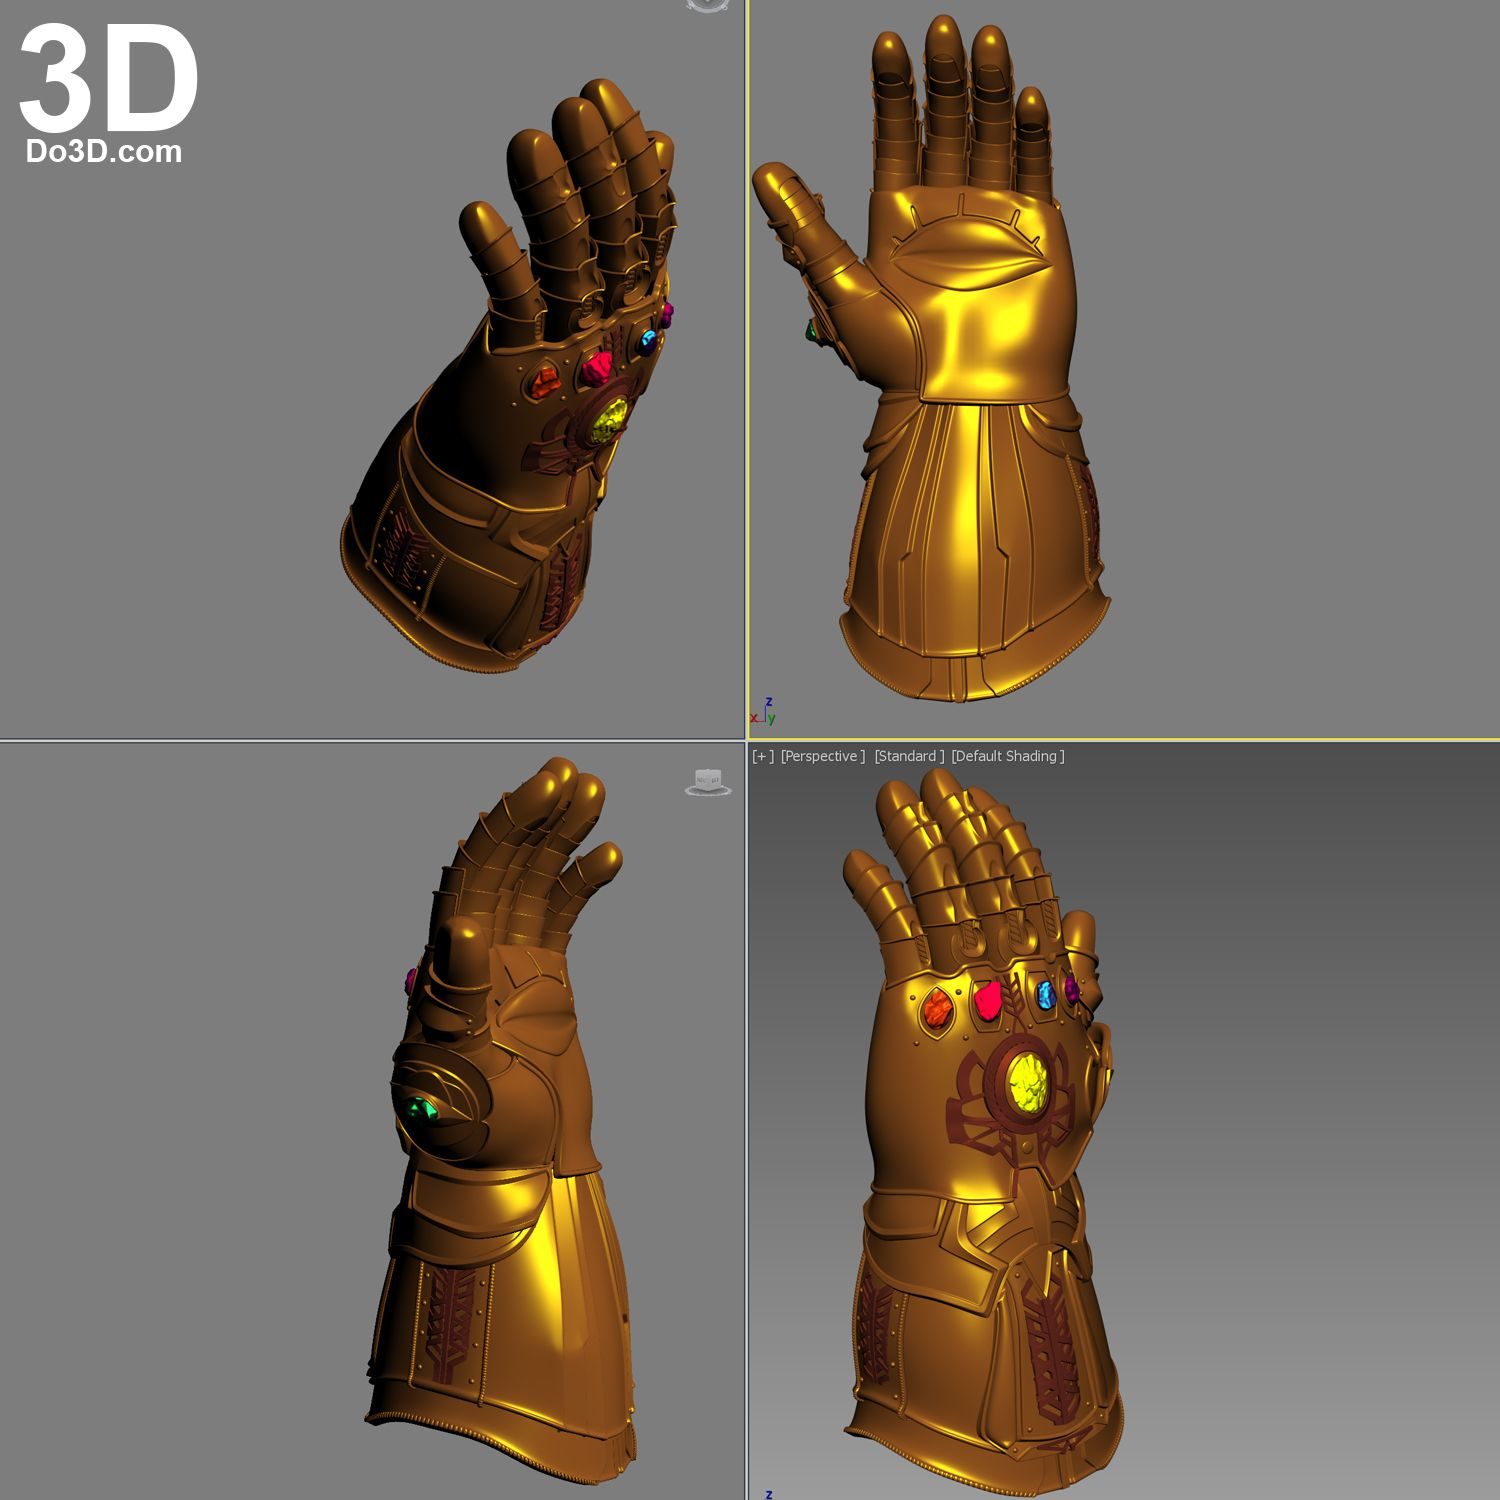 Manopla do infinito clipart png library download 3D Printable Model: Thanos Infinity Gauntlet (Forearm & Glove) D23 ... png library download